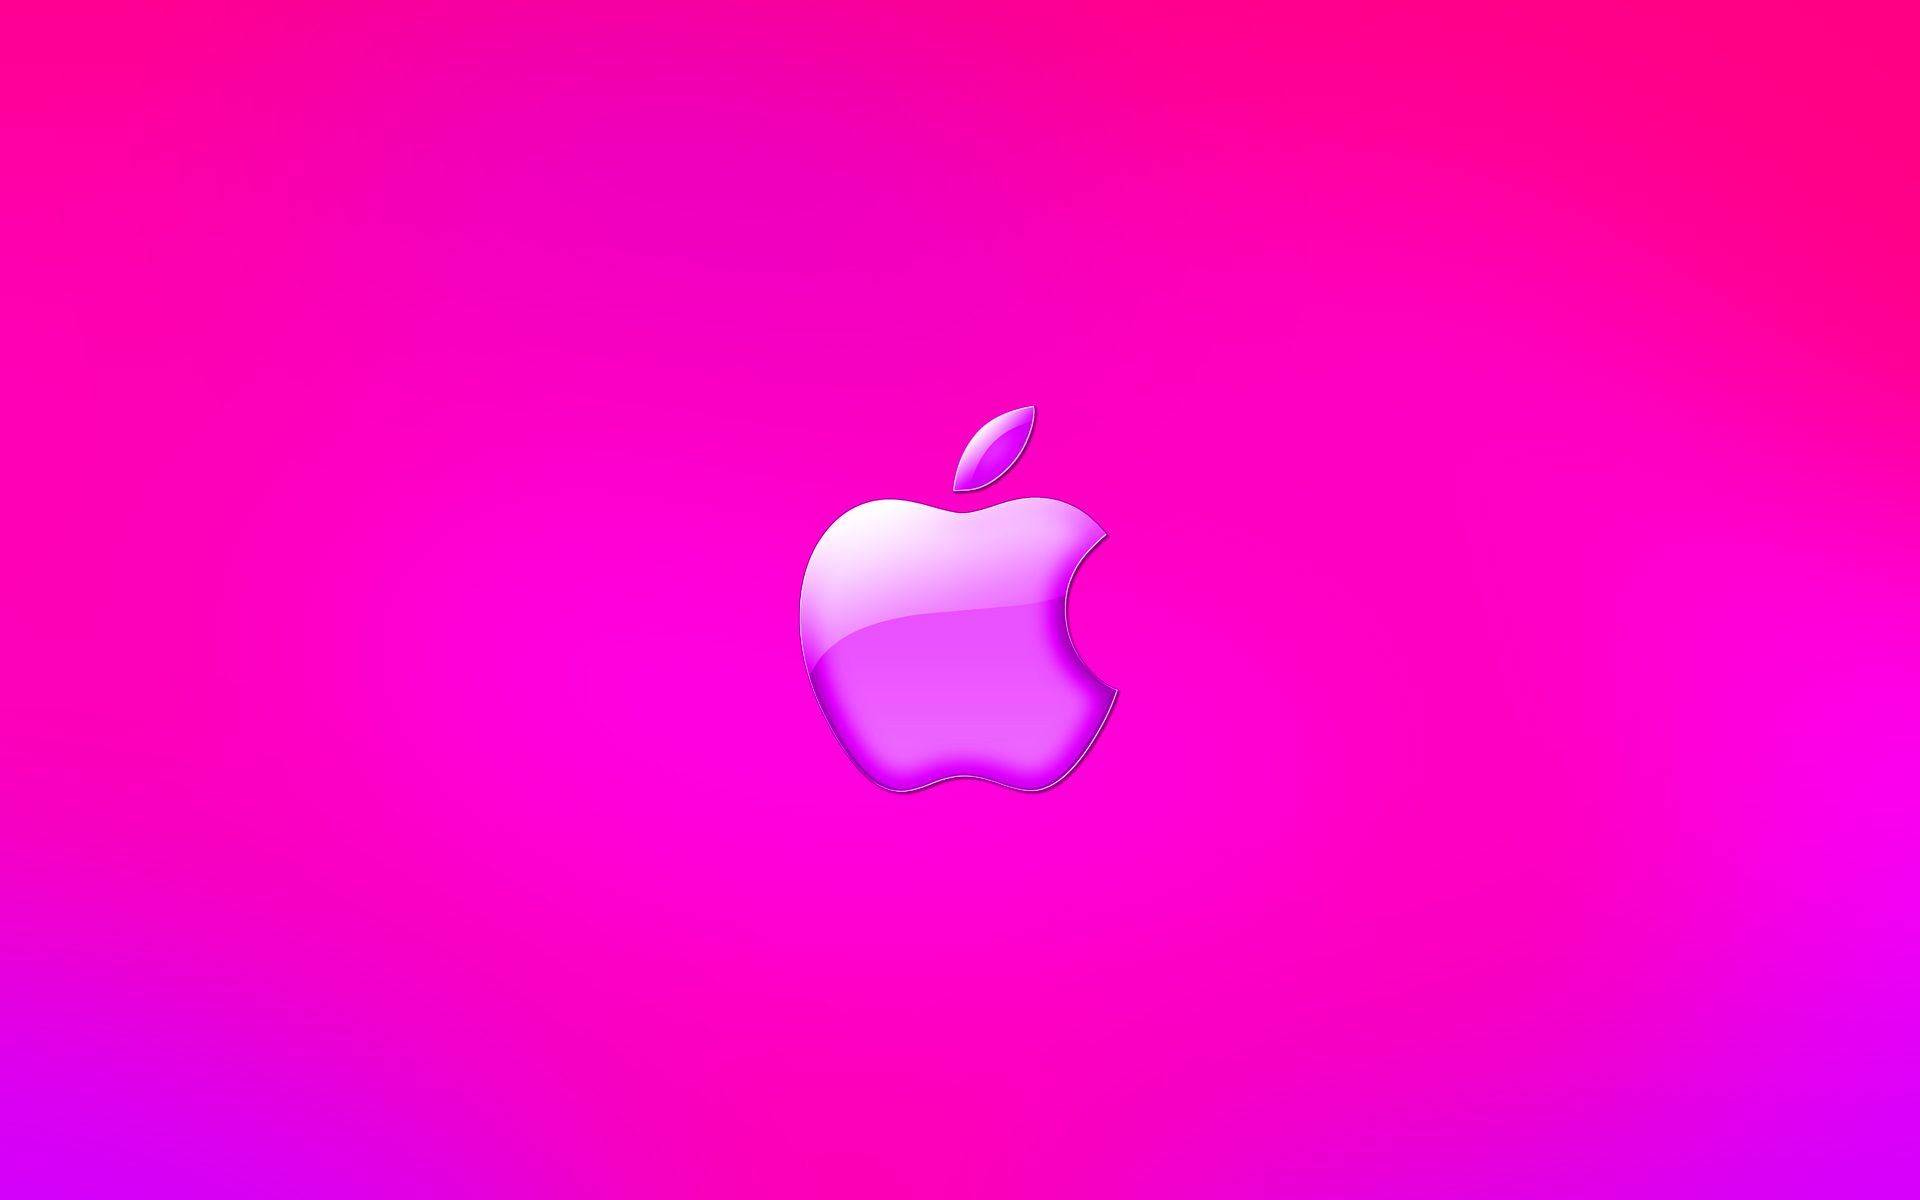 Best Wallpaper Macbook Pink - be5cc25b02a09551ce9eae57e5f67d01  Perfect Image Reference_74421.jpg